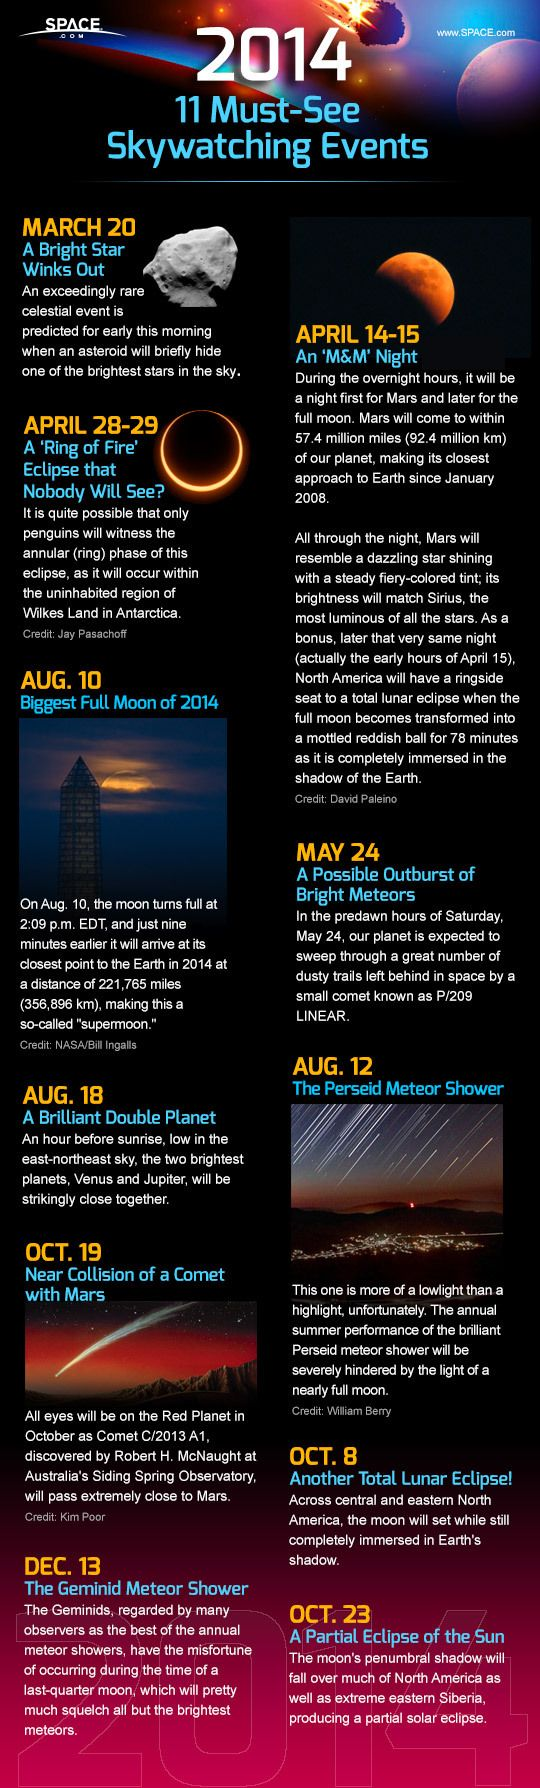 Major sky events of 2014.